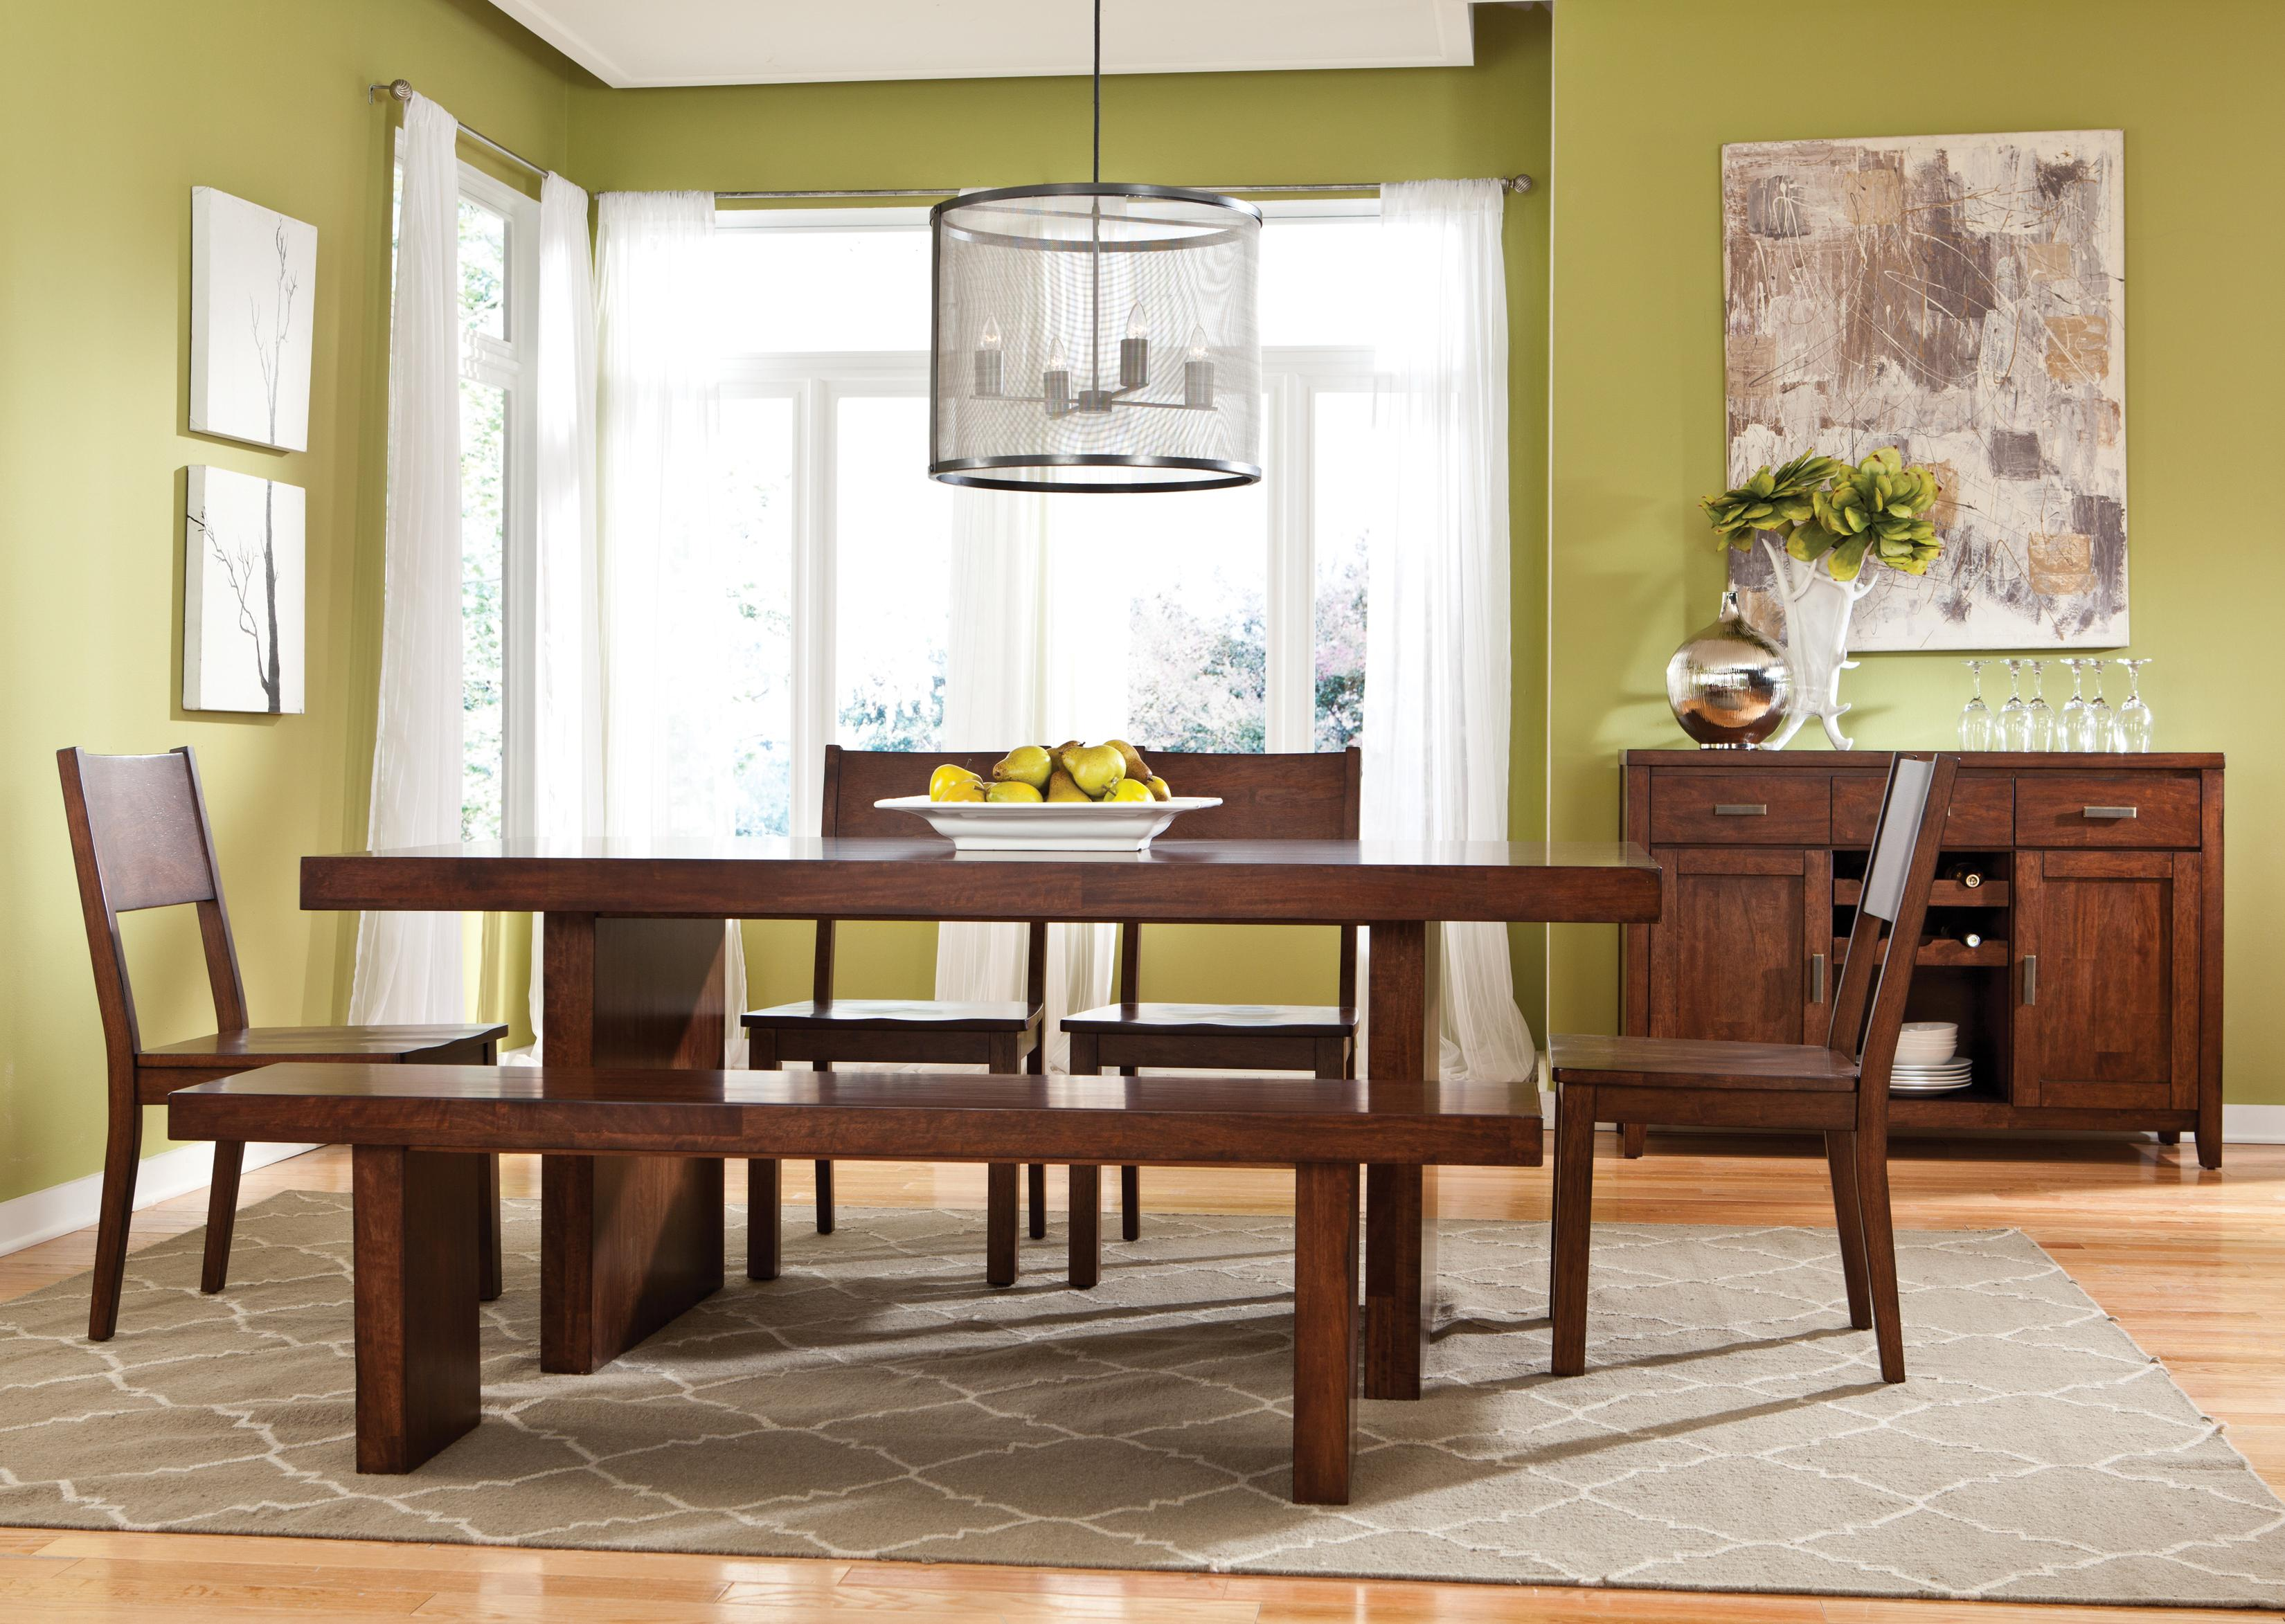 dining-room-group-1-b0